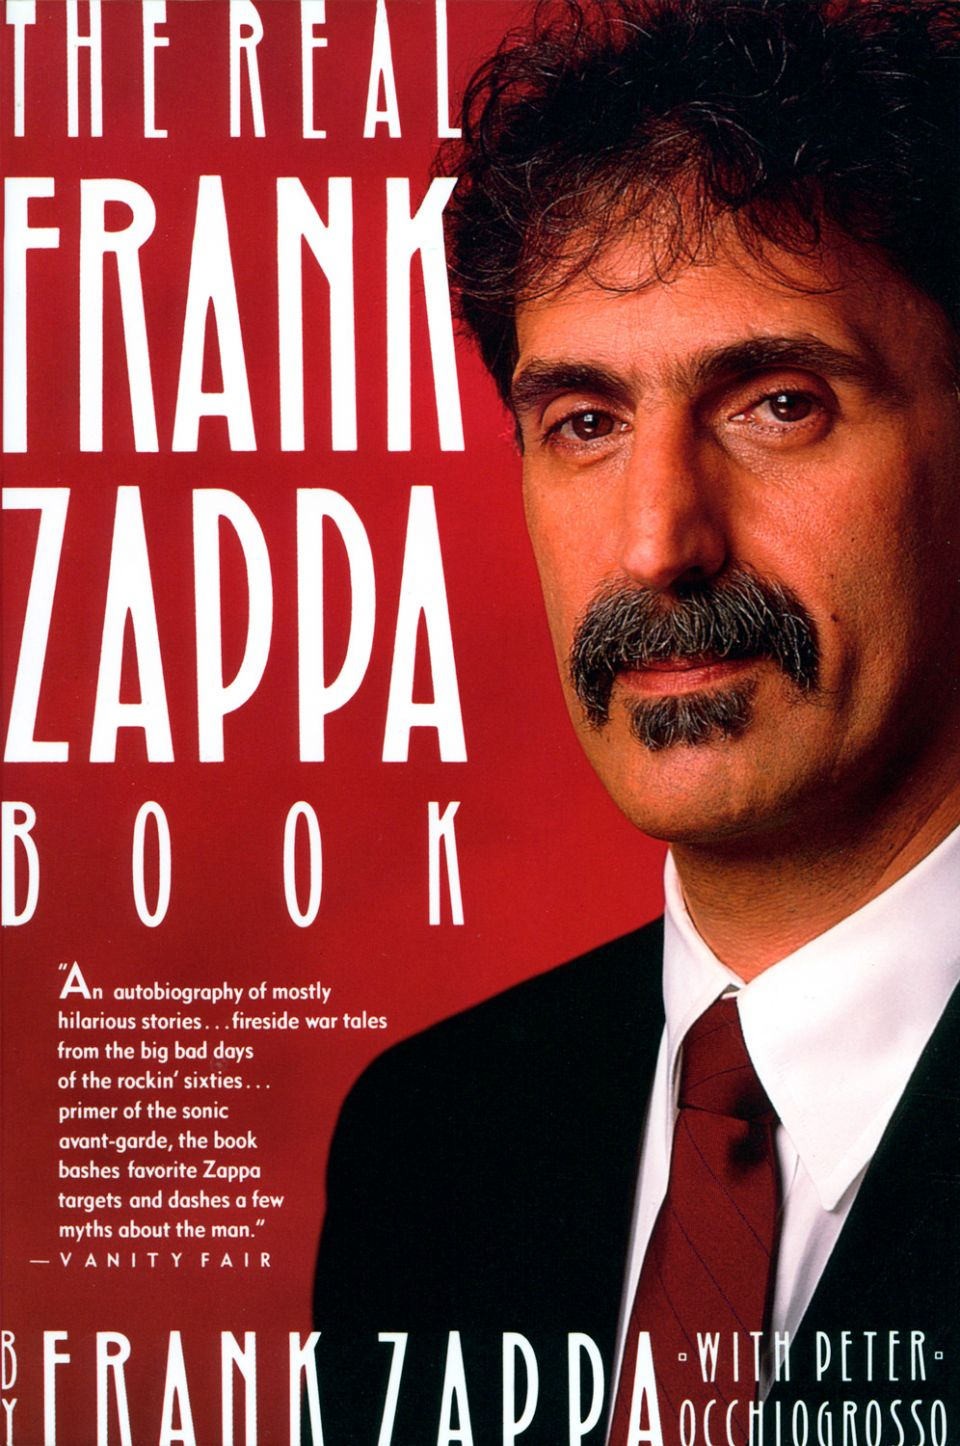 the-real-frank-zappa-book_0